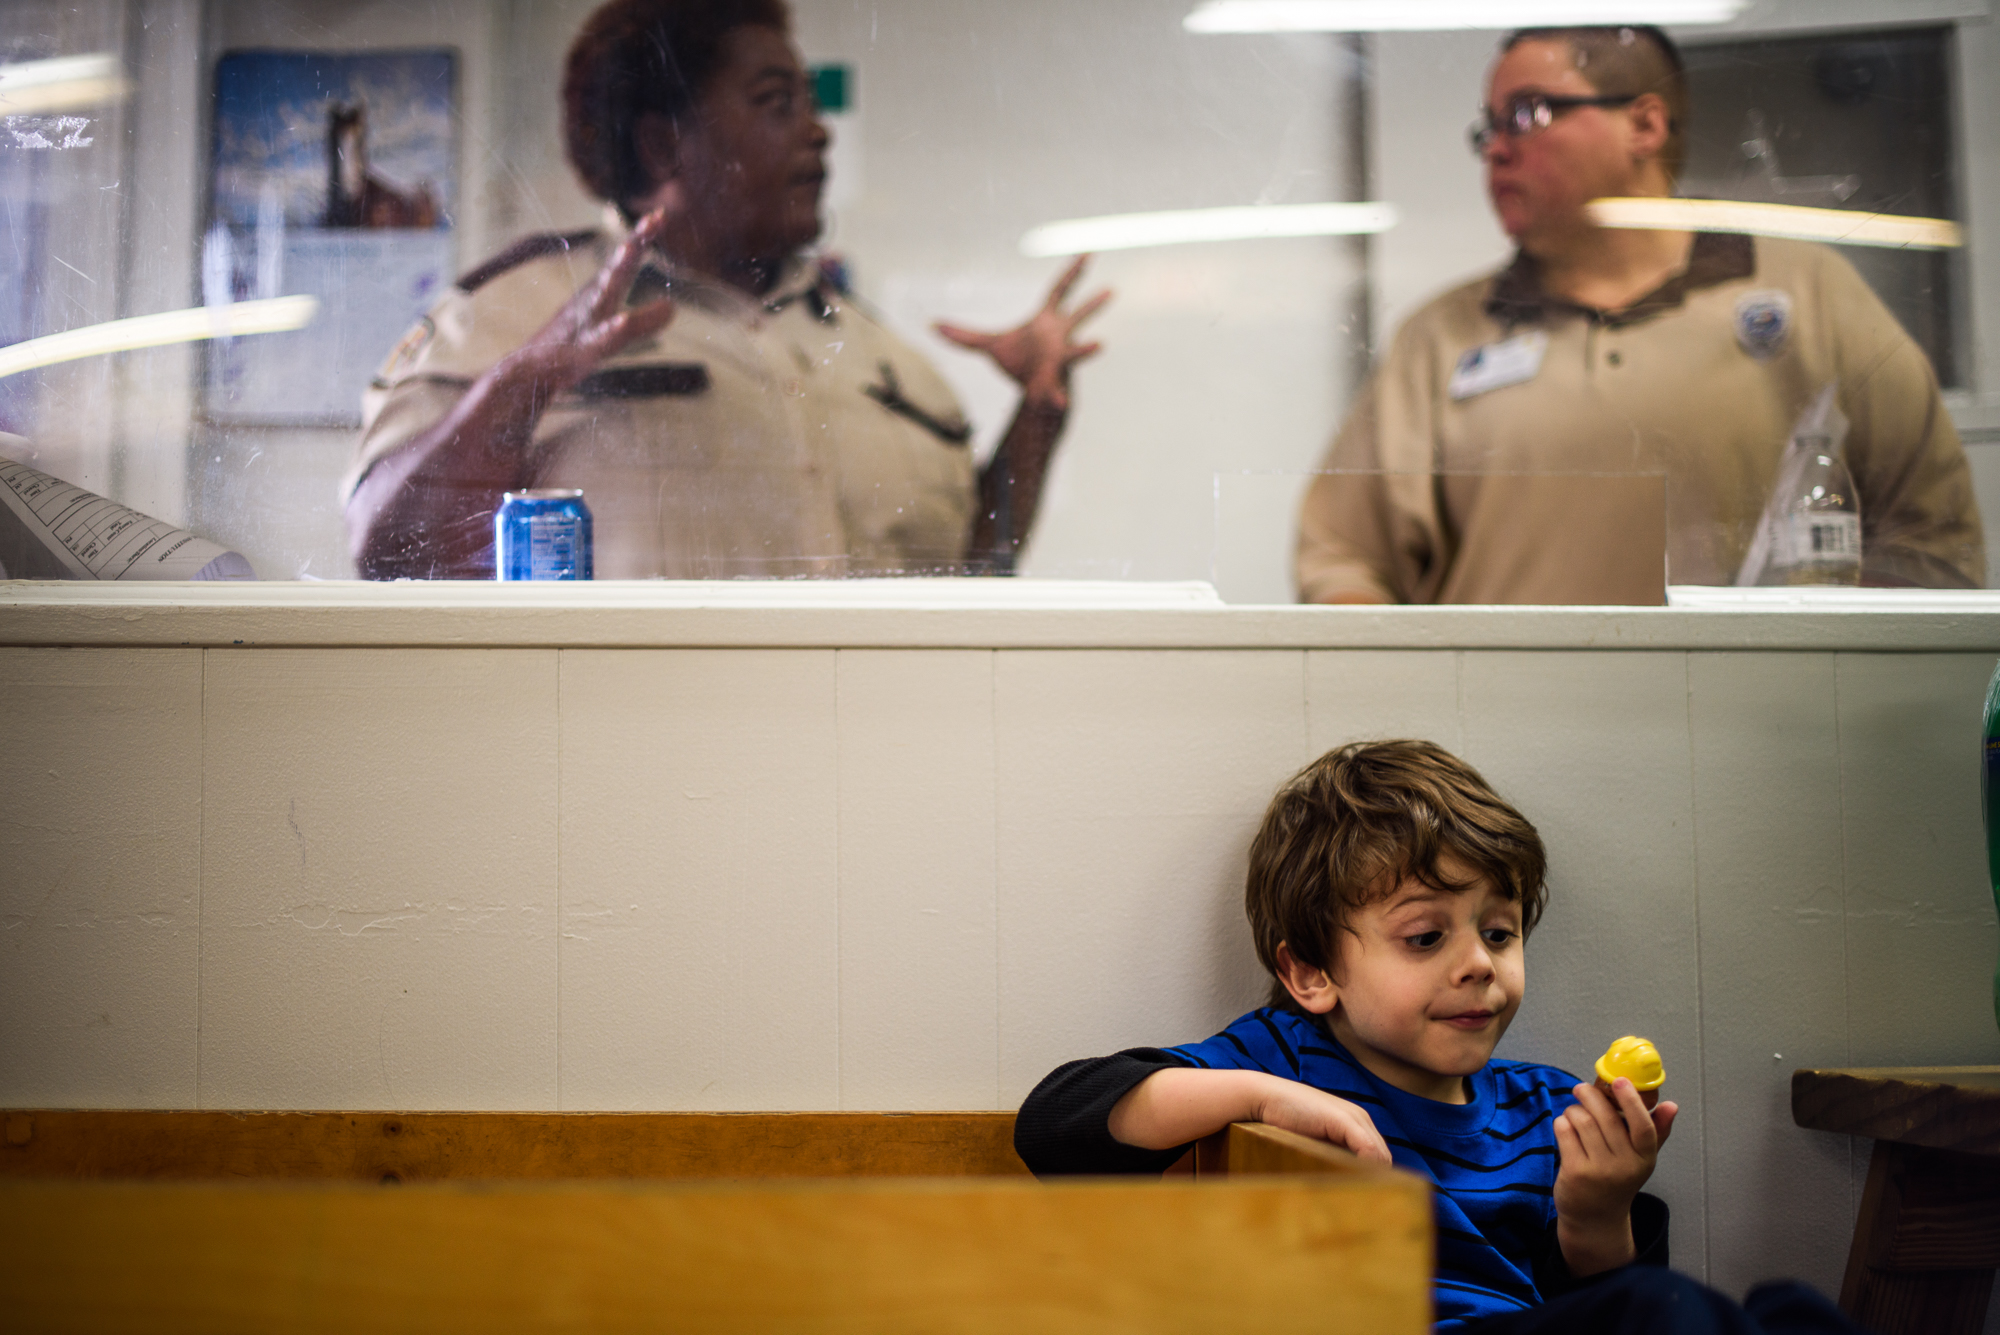 Angel, age 5, looks at a toy as correctional officers communicate behind him during a visit with his mother, Mary, at the Hernando Correctional Facility in Brooksville, Florida.